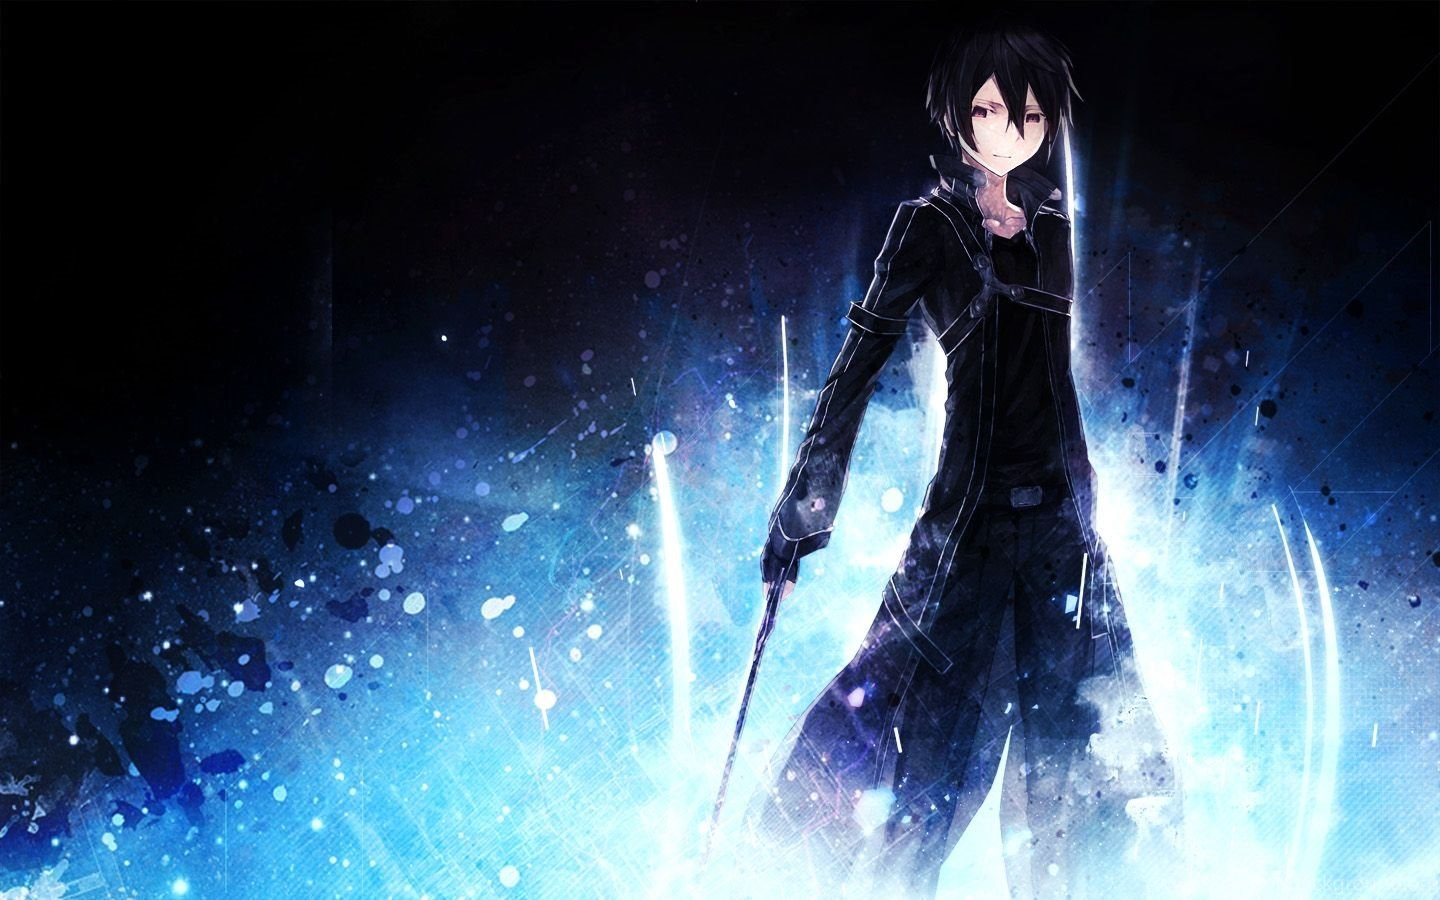 download anime wallpapers sword art online backgrounds desktop